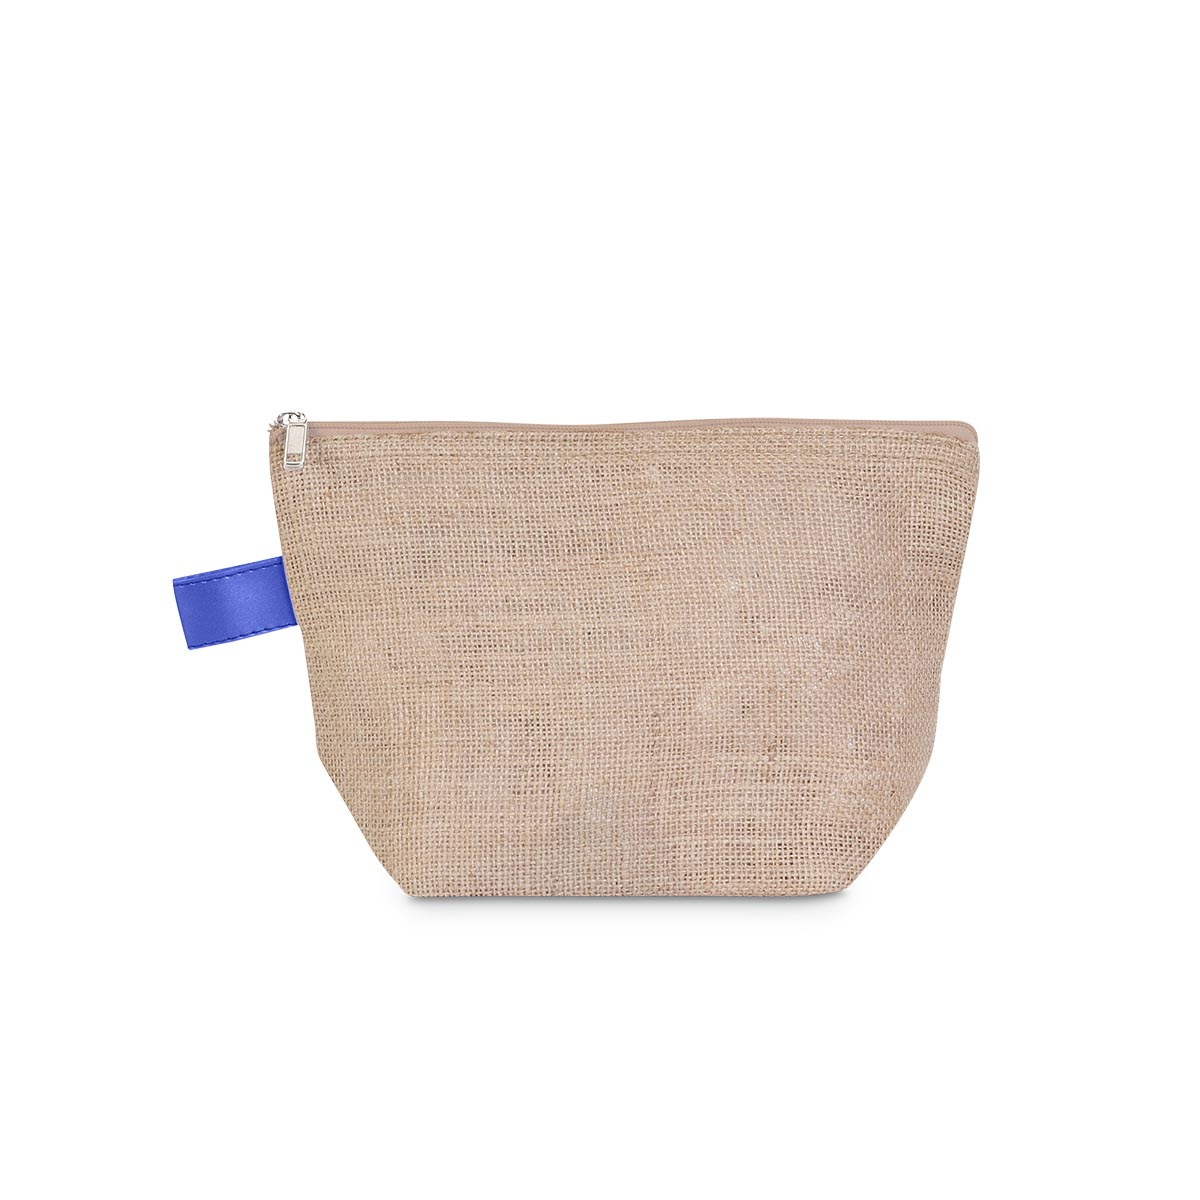 khaki jute zipper bag pouch, royal trim